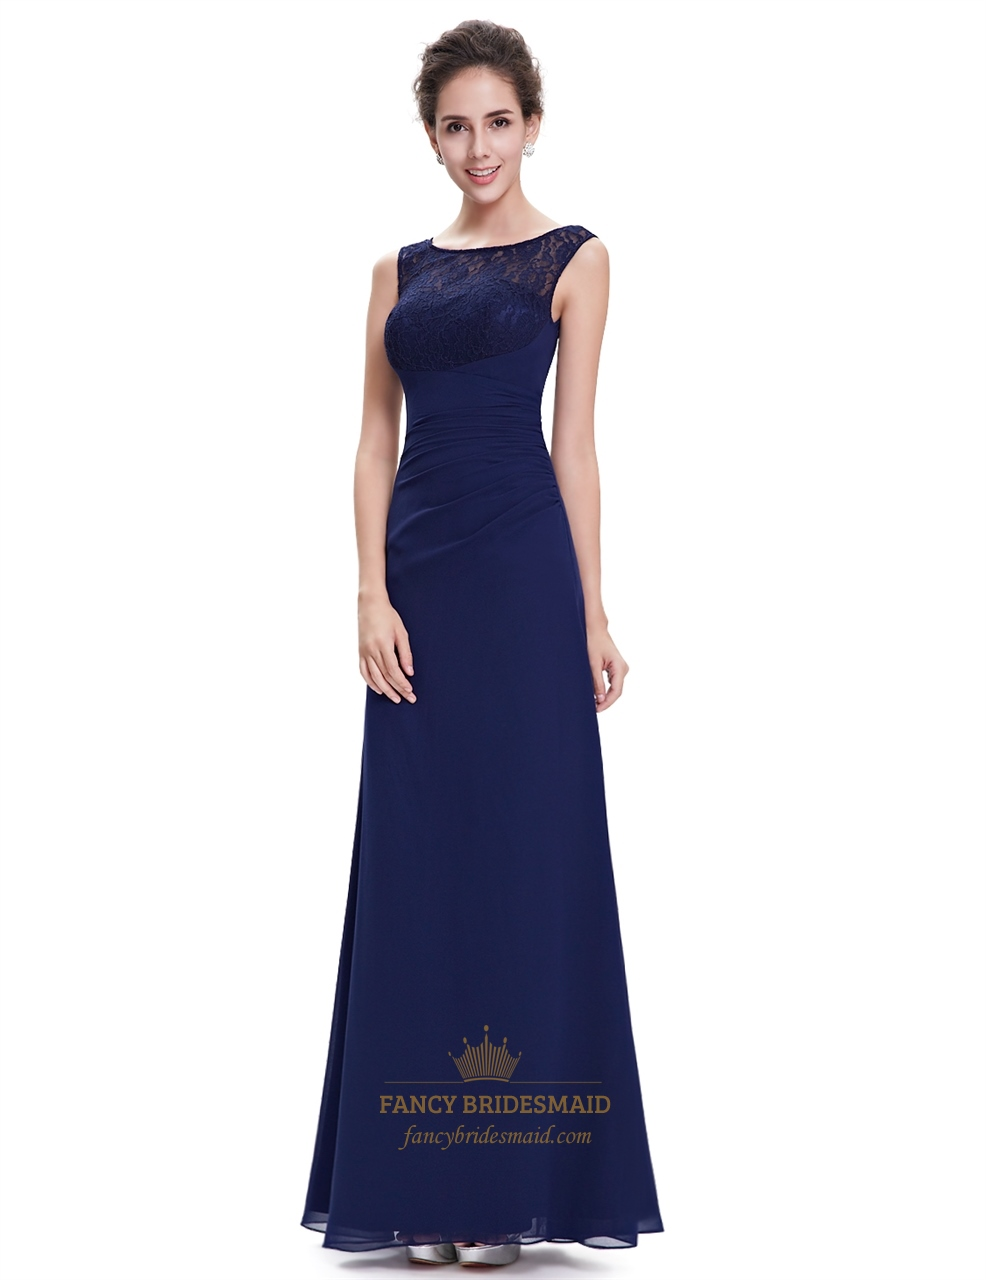 Elegant navy blue chiffon bridesmaid dresses lace top for Wedding dresses chiffon lace